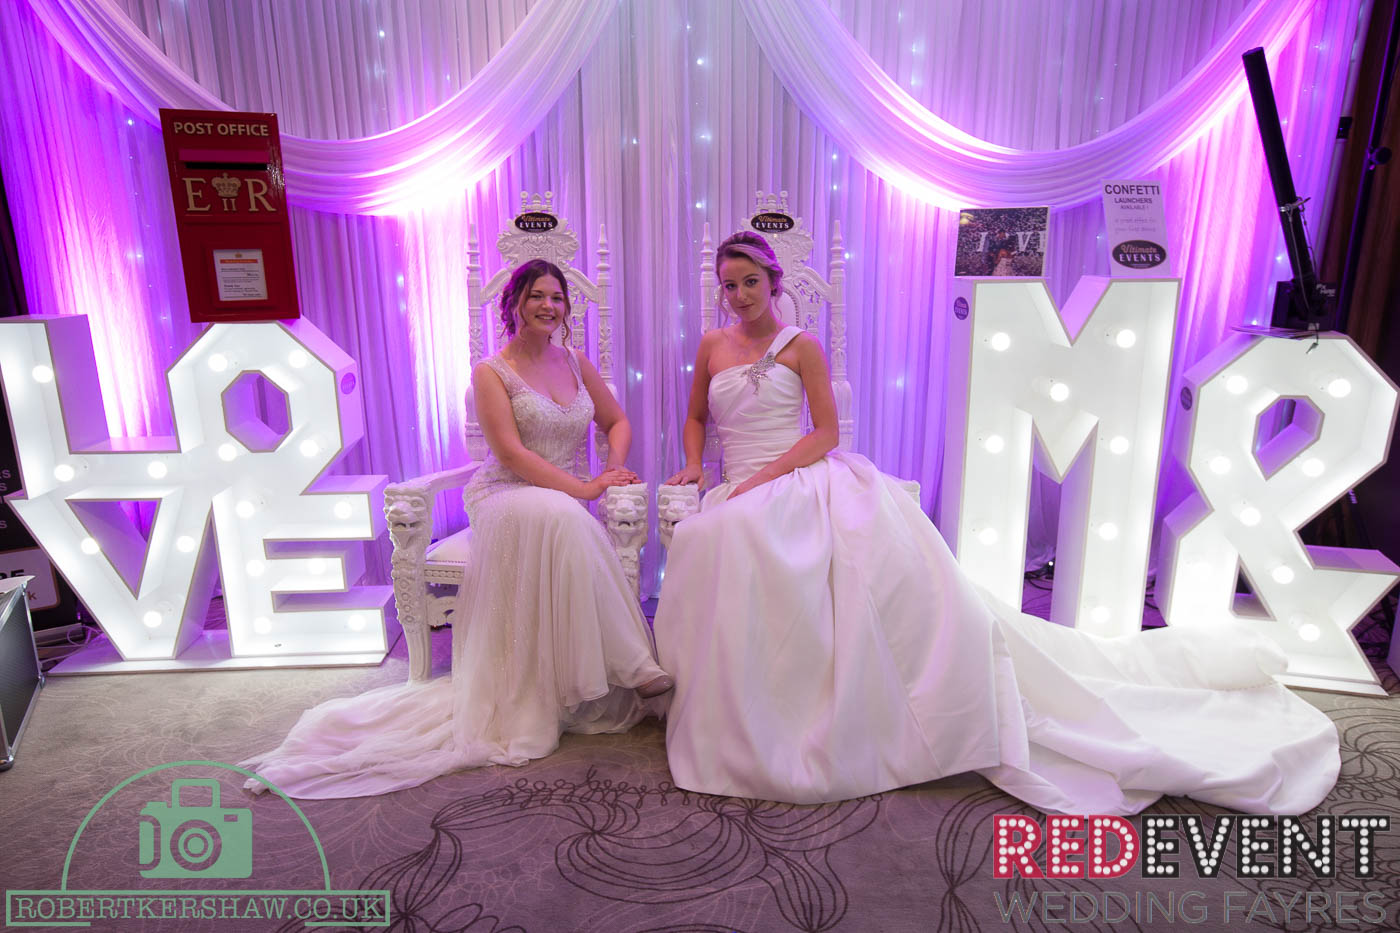 Ultimate Events special offer for Formby Hall Wedding Fayre Liverpool Wedding Fair Merseyside Weddings www.redeventweddingfayres.com2.jpg